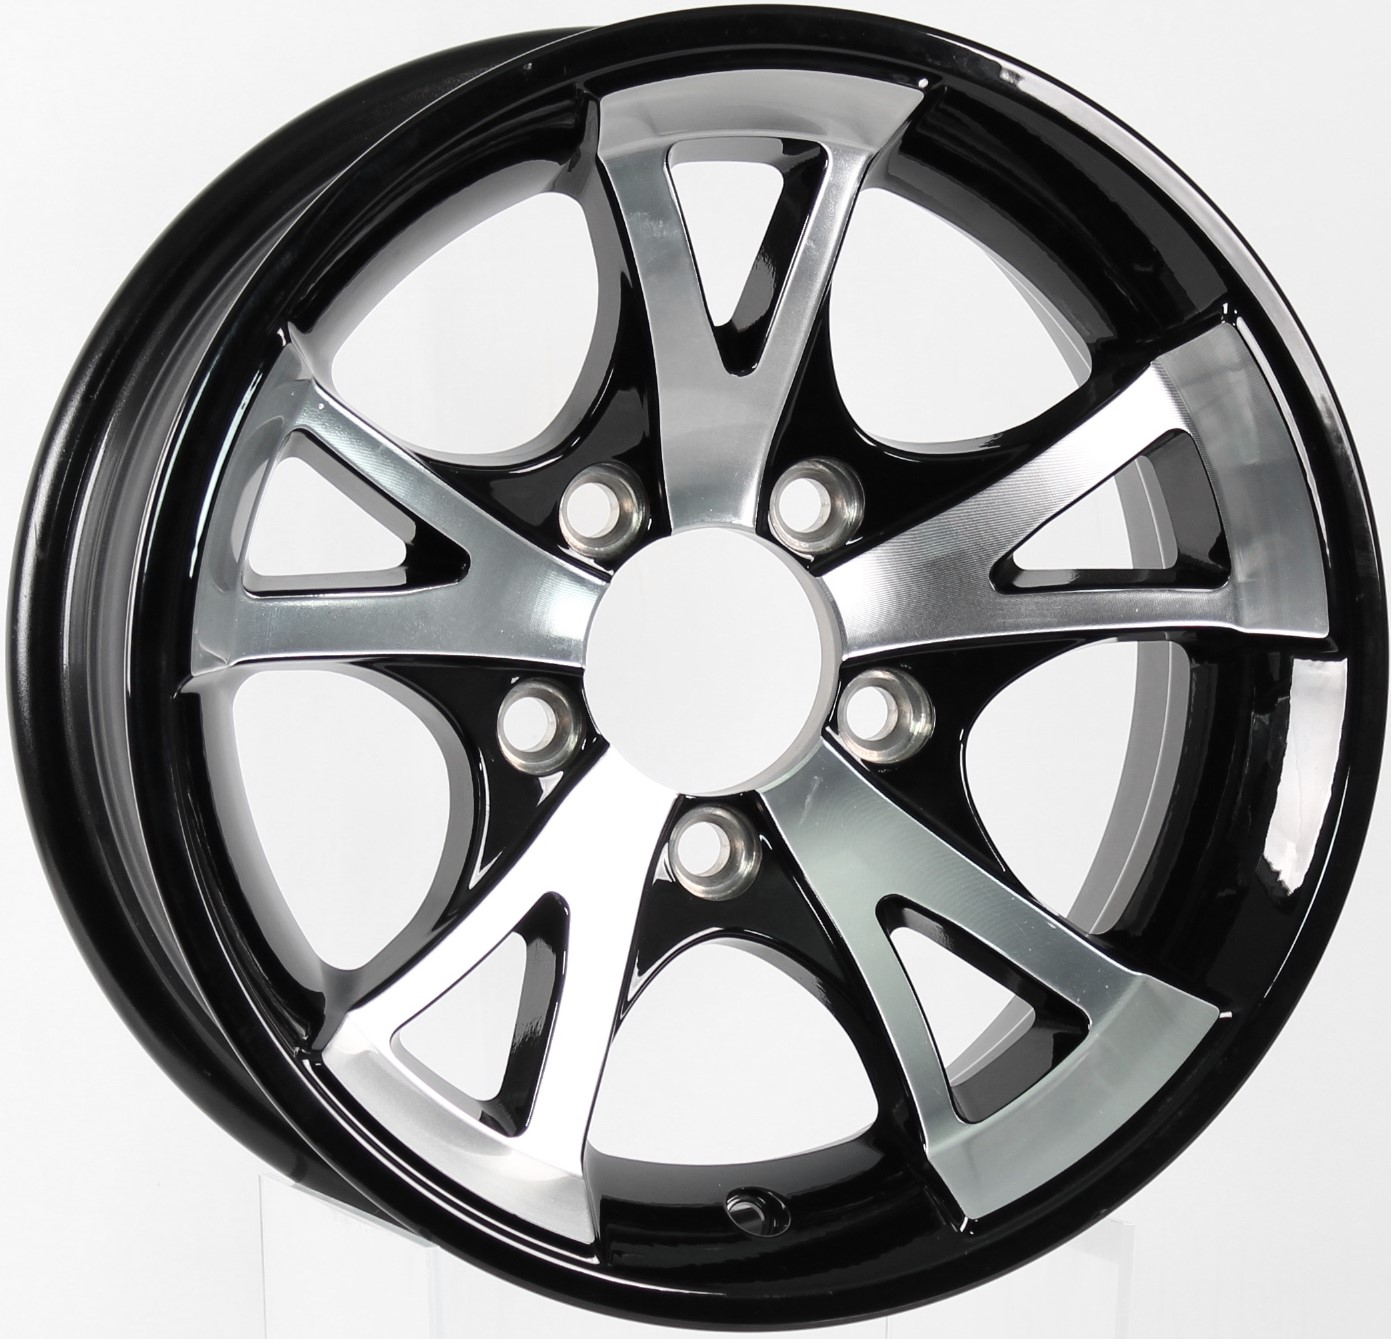 A1411- 13x5 5-4.5 Black Aluminum Trailer Wheel Image